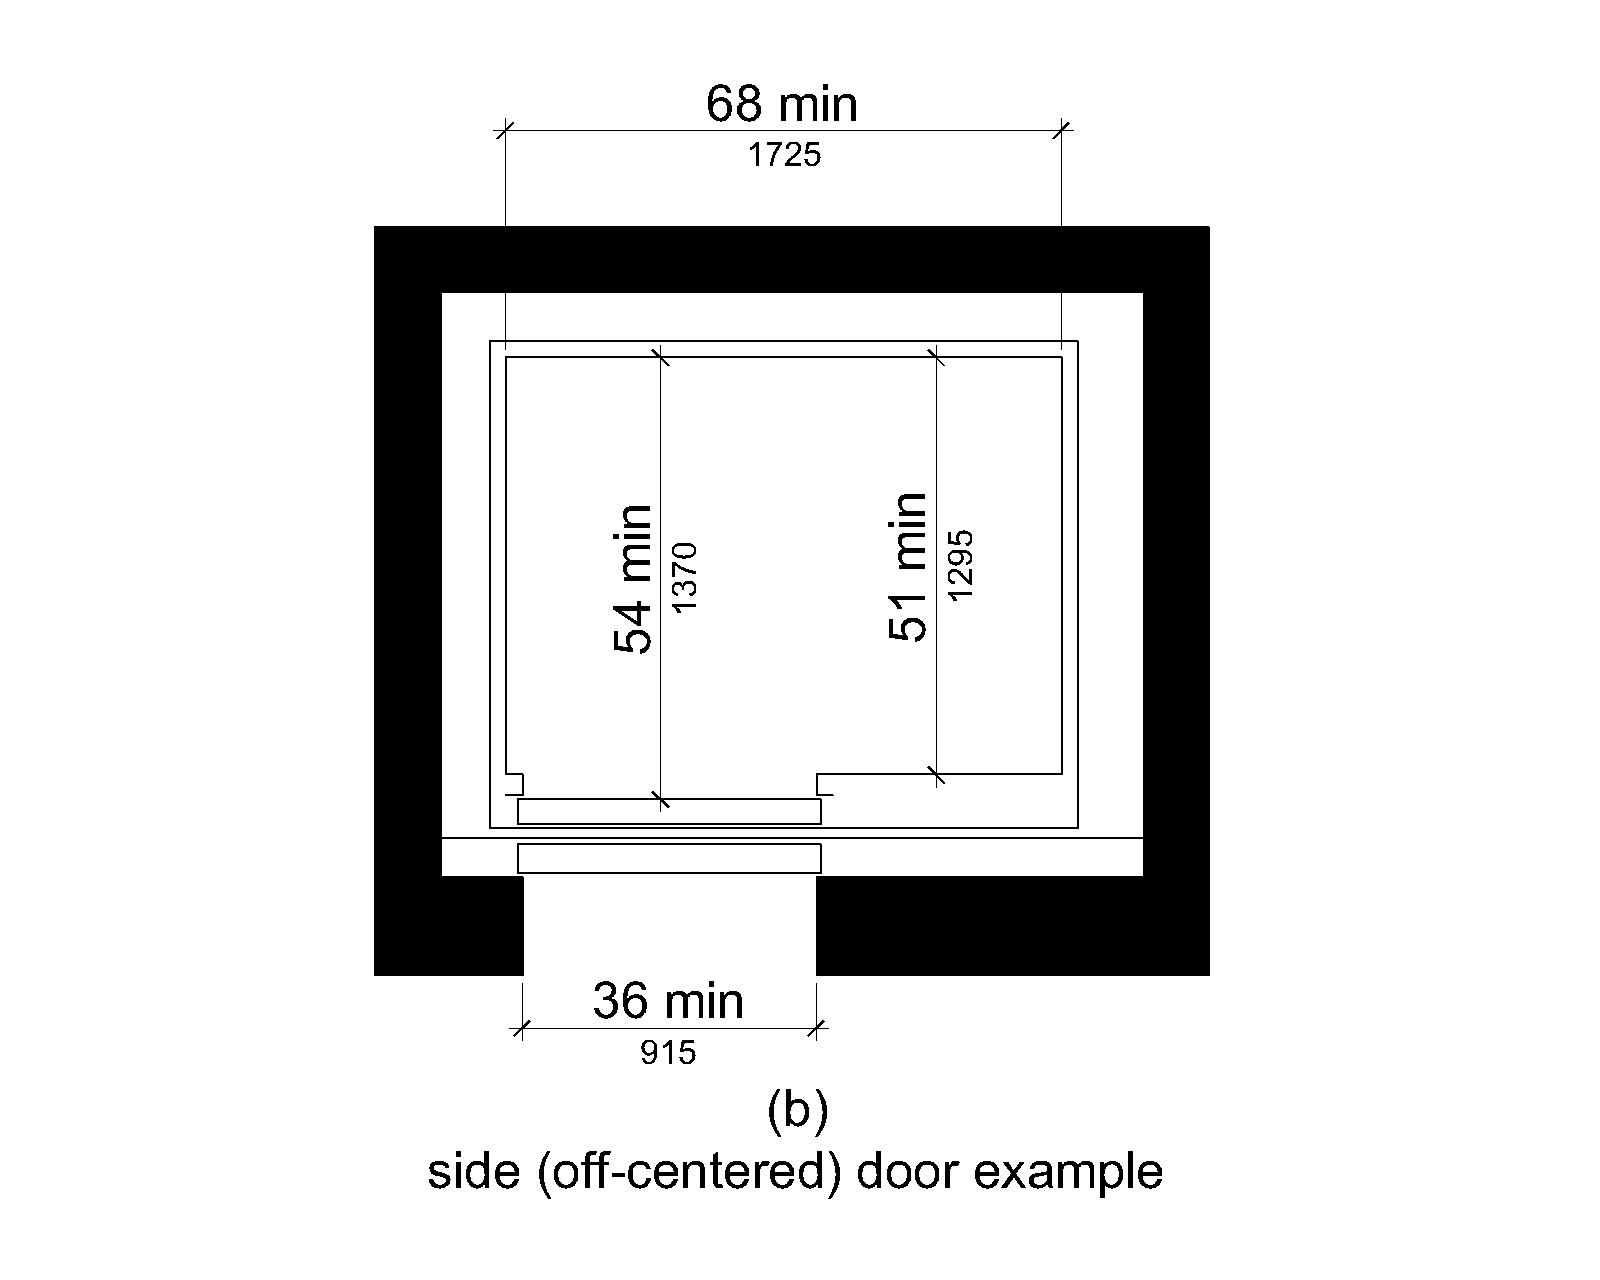 Figure (b) shows an elevator car with an off-centered door example. The door clear width is 36 inches (915 mm) minimum and the car width measured side to side is 68 inches (1725 mm) minimum. The depth is 51 inches (1295 mm) minimum measured from the back wall to the front return, and 54 inches (1370 mm) minimum measured from the back wall to the inside face of the door